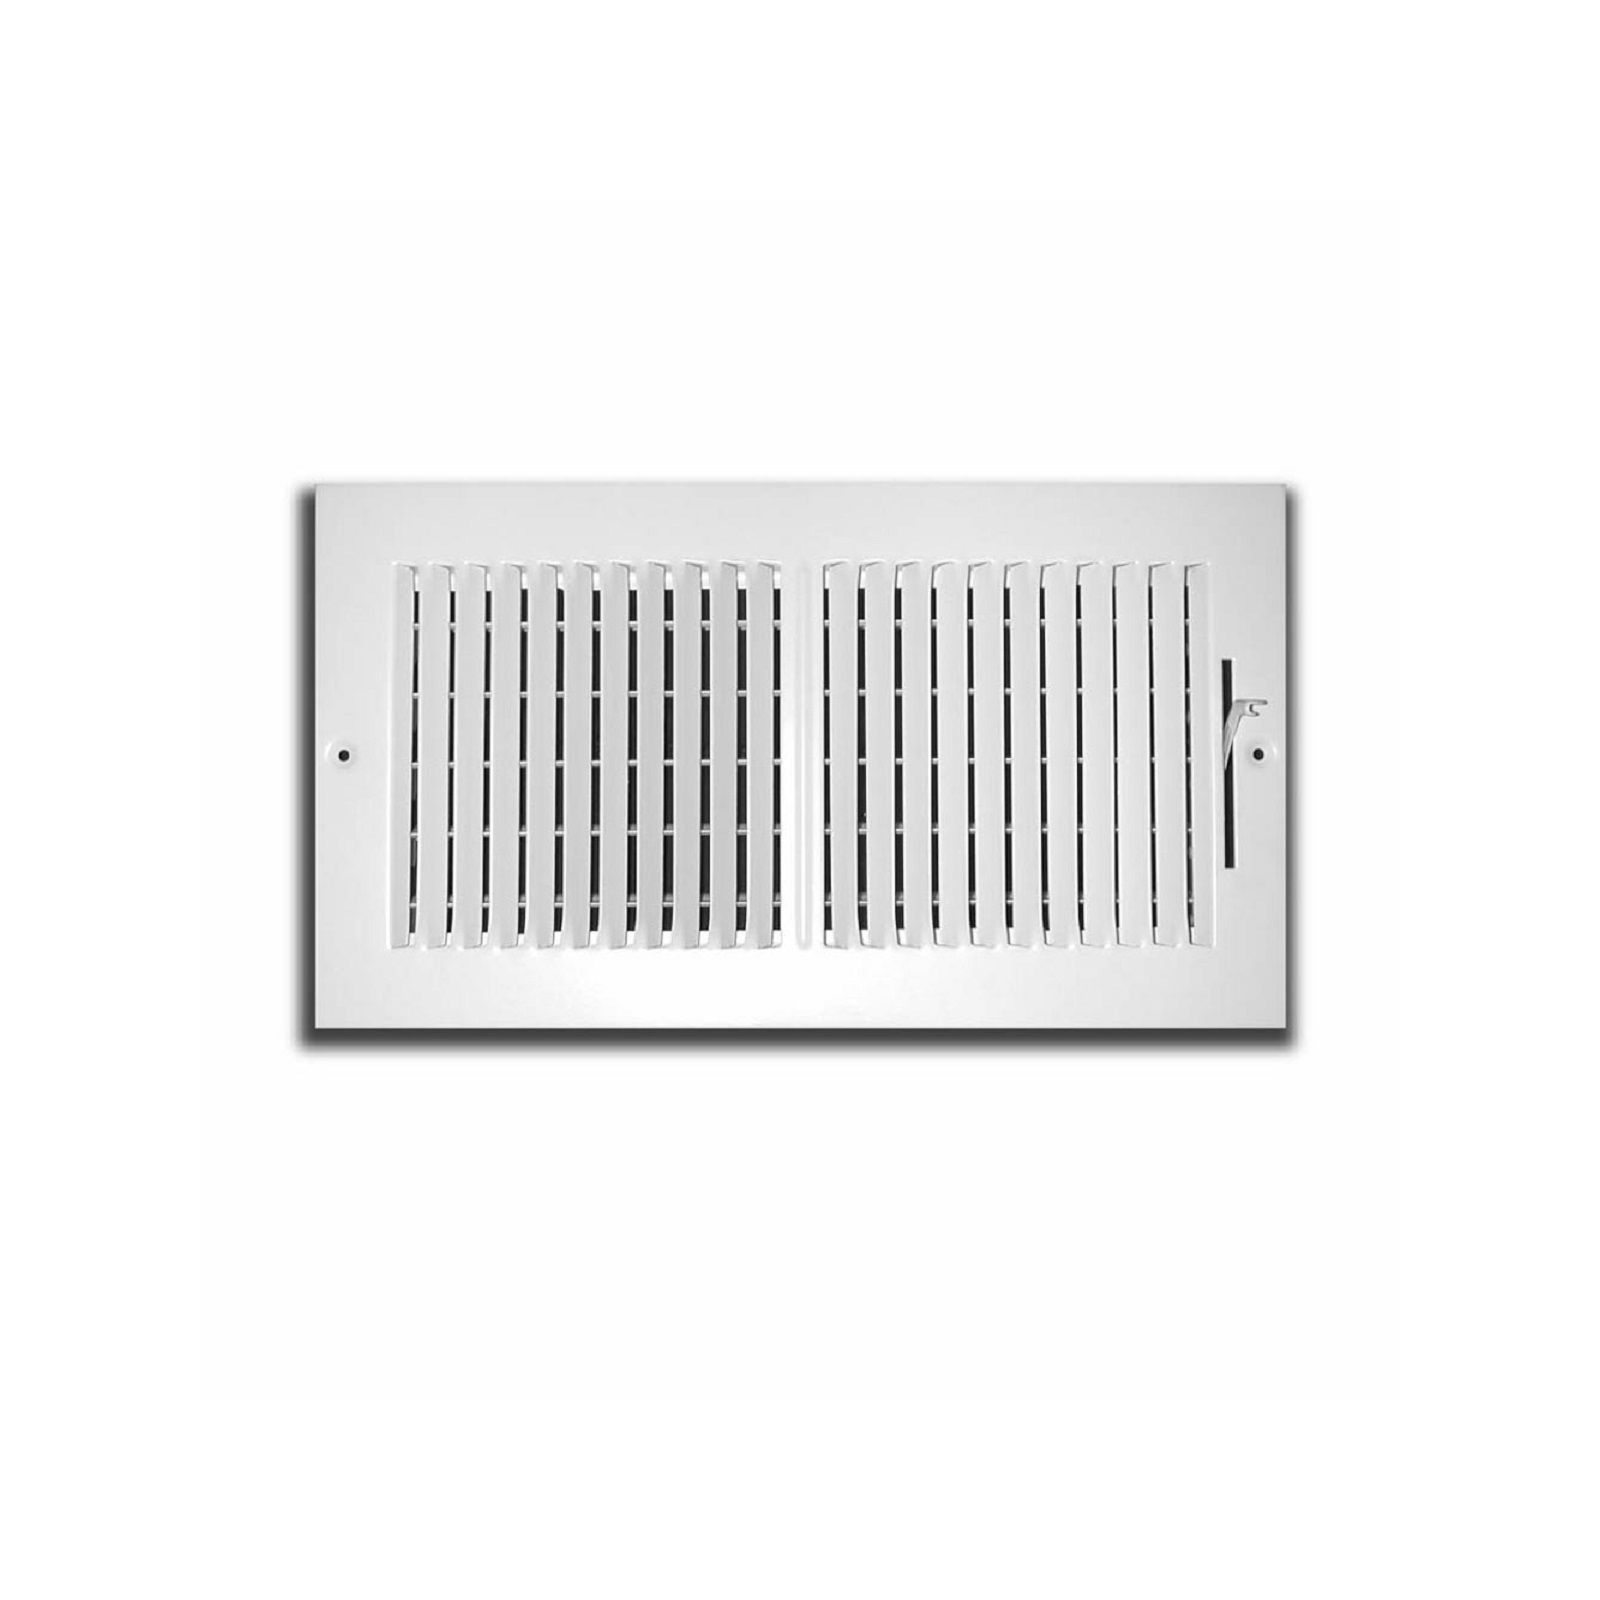 "TRUaire 102M 10X06 - Stamped Steel 2-Way Wall/Ceiling Register, 10"" X 06"""